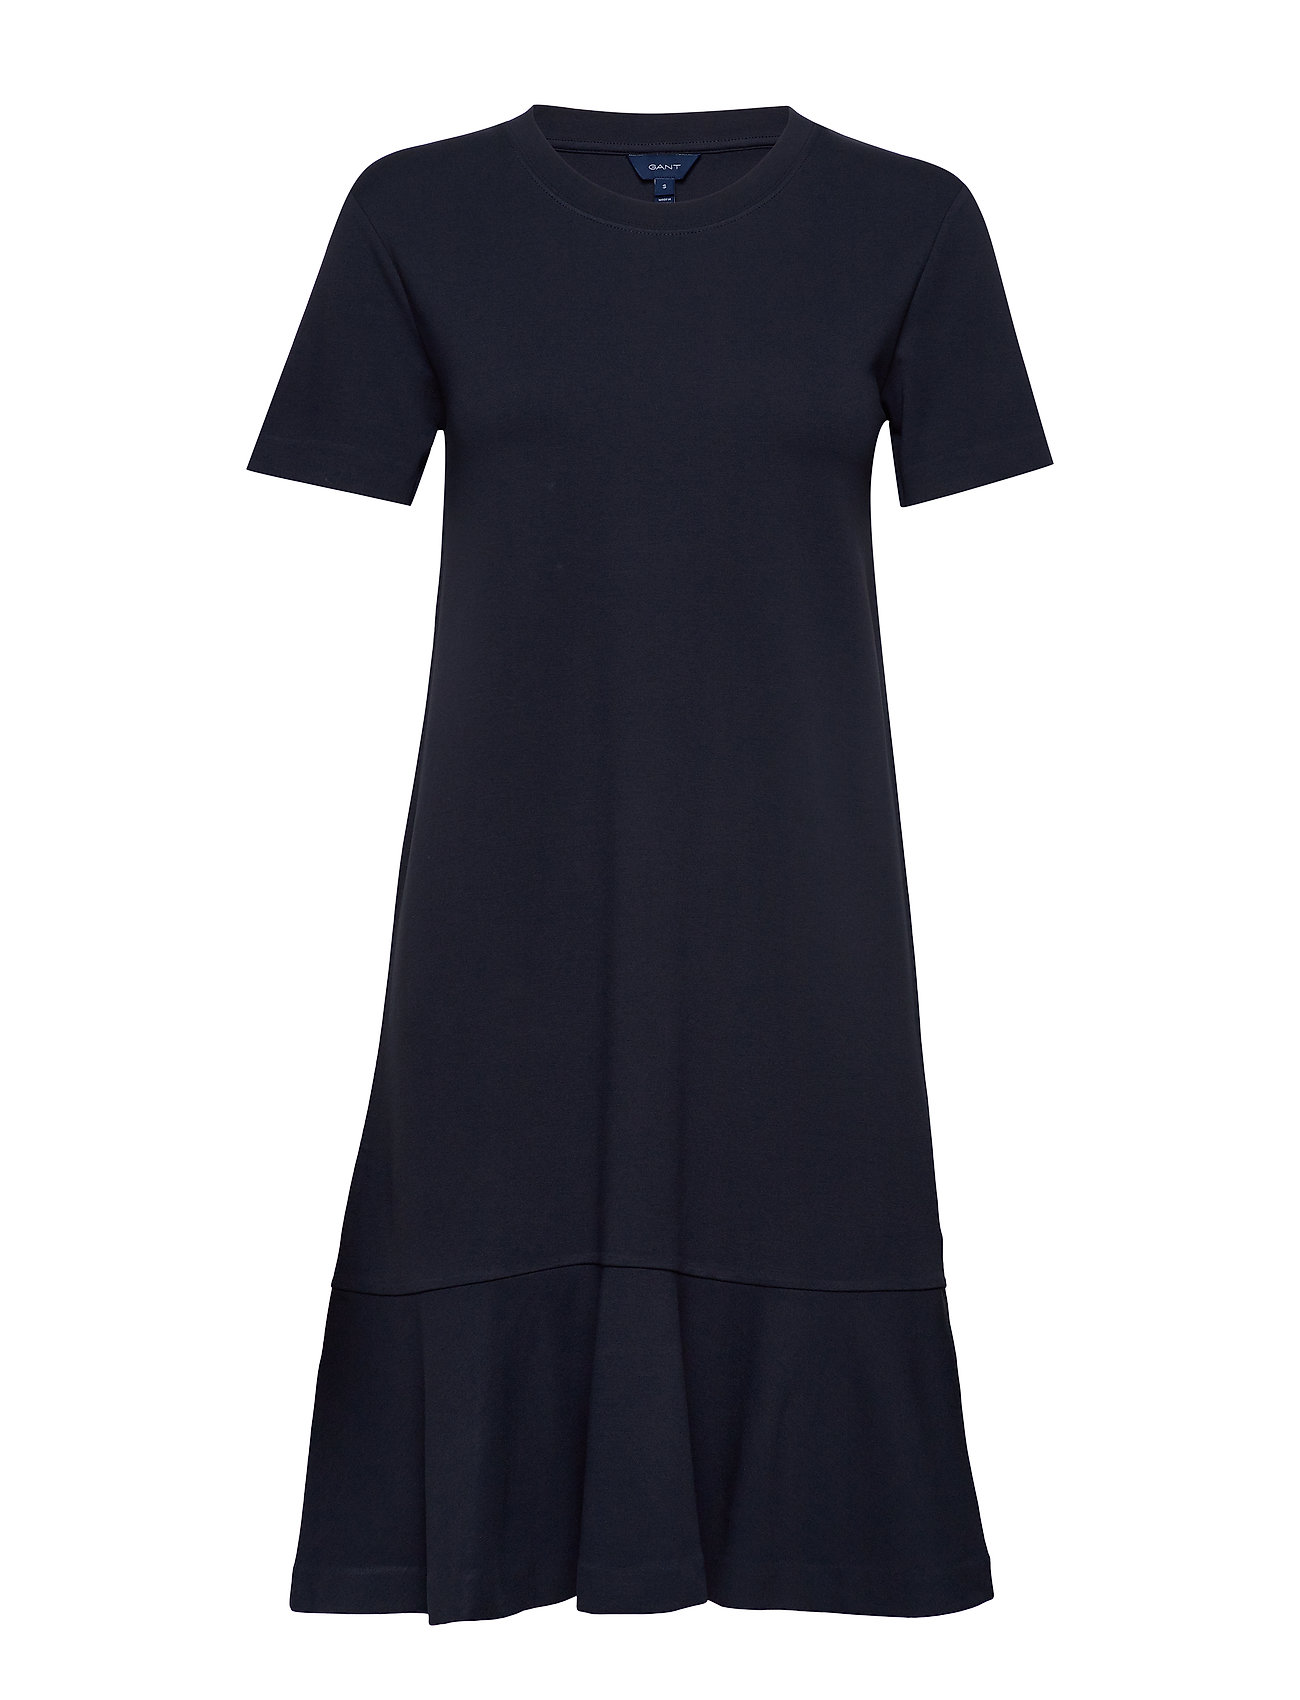 Gant D1. FLOUNCE DETAIL JERSEY DRESS - EVENING BLUE